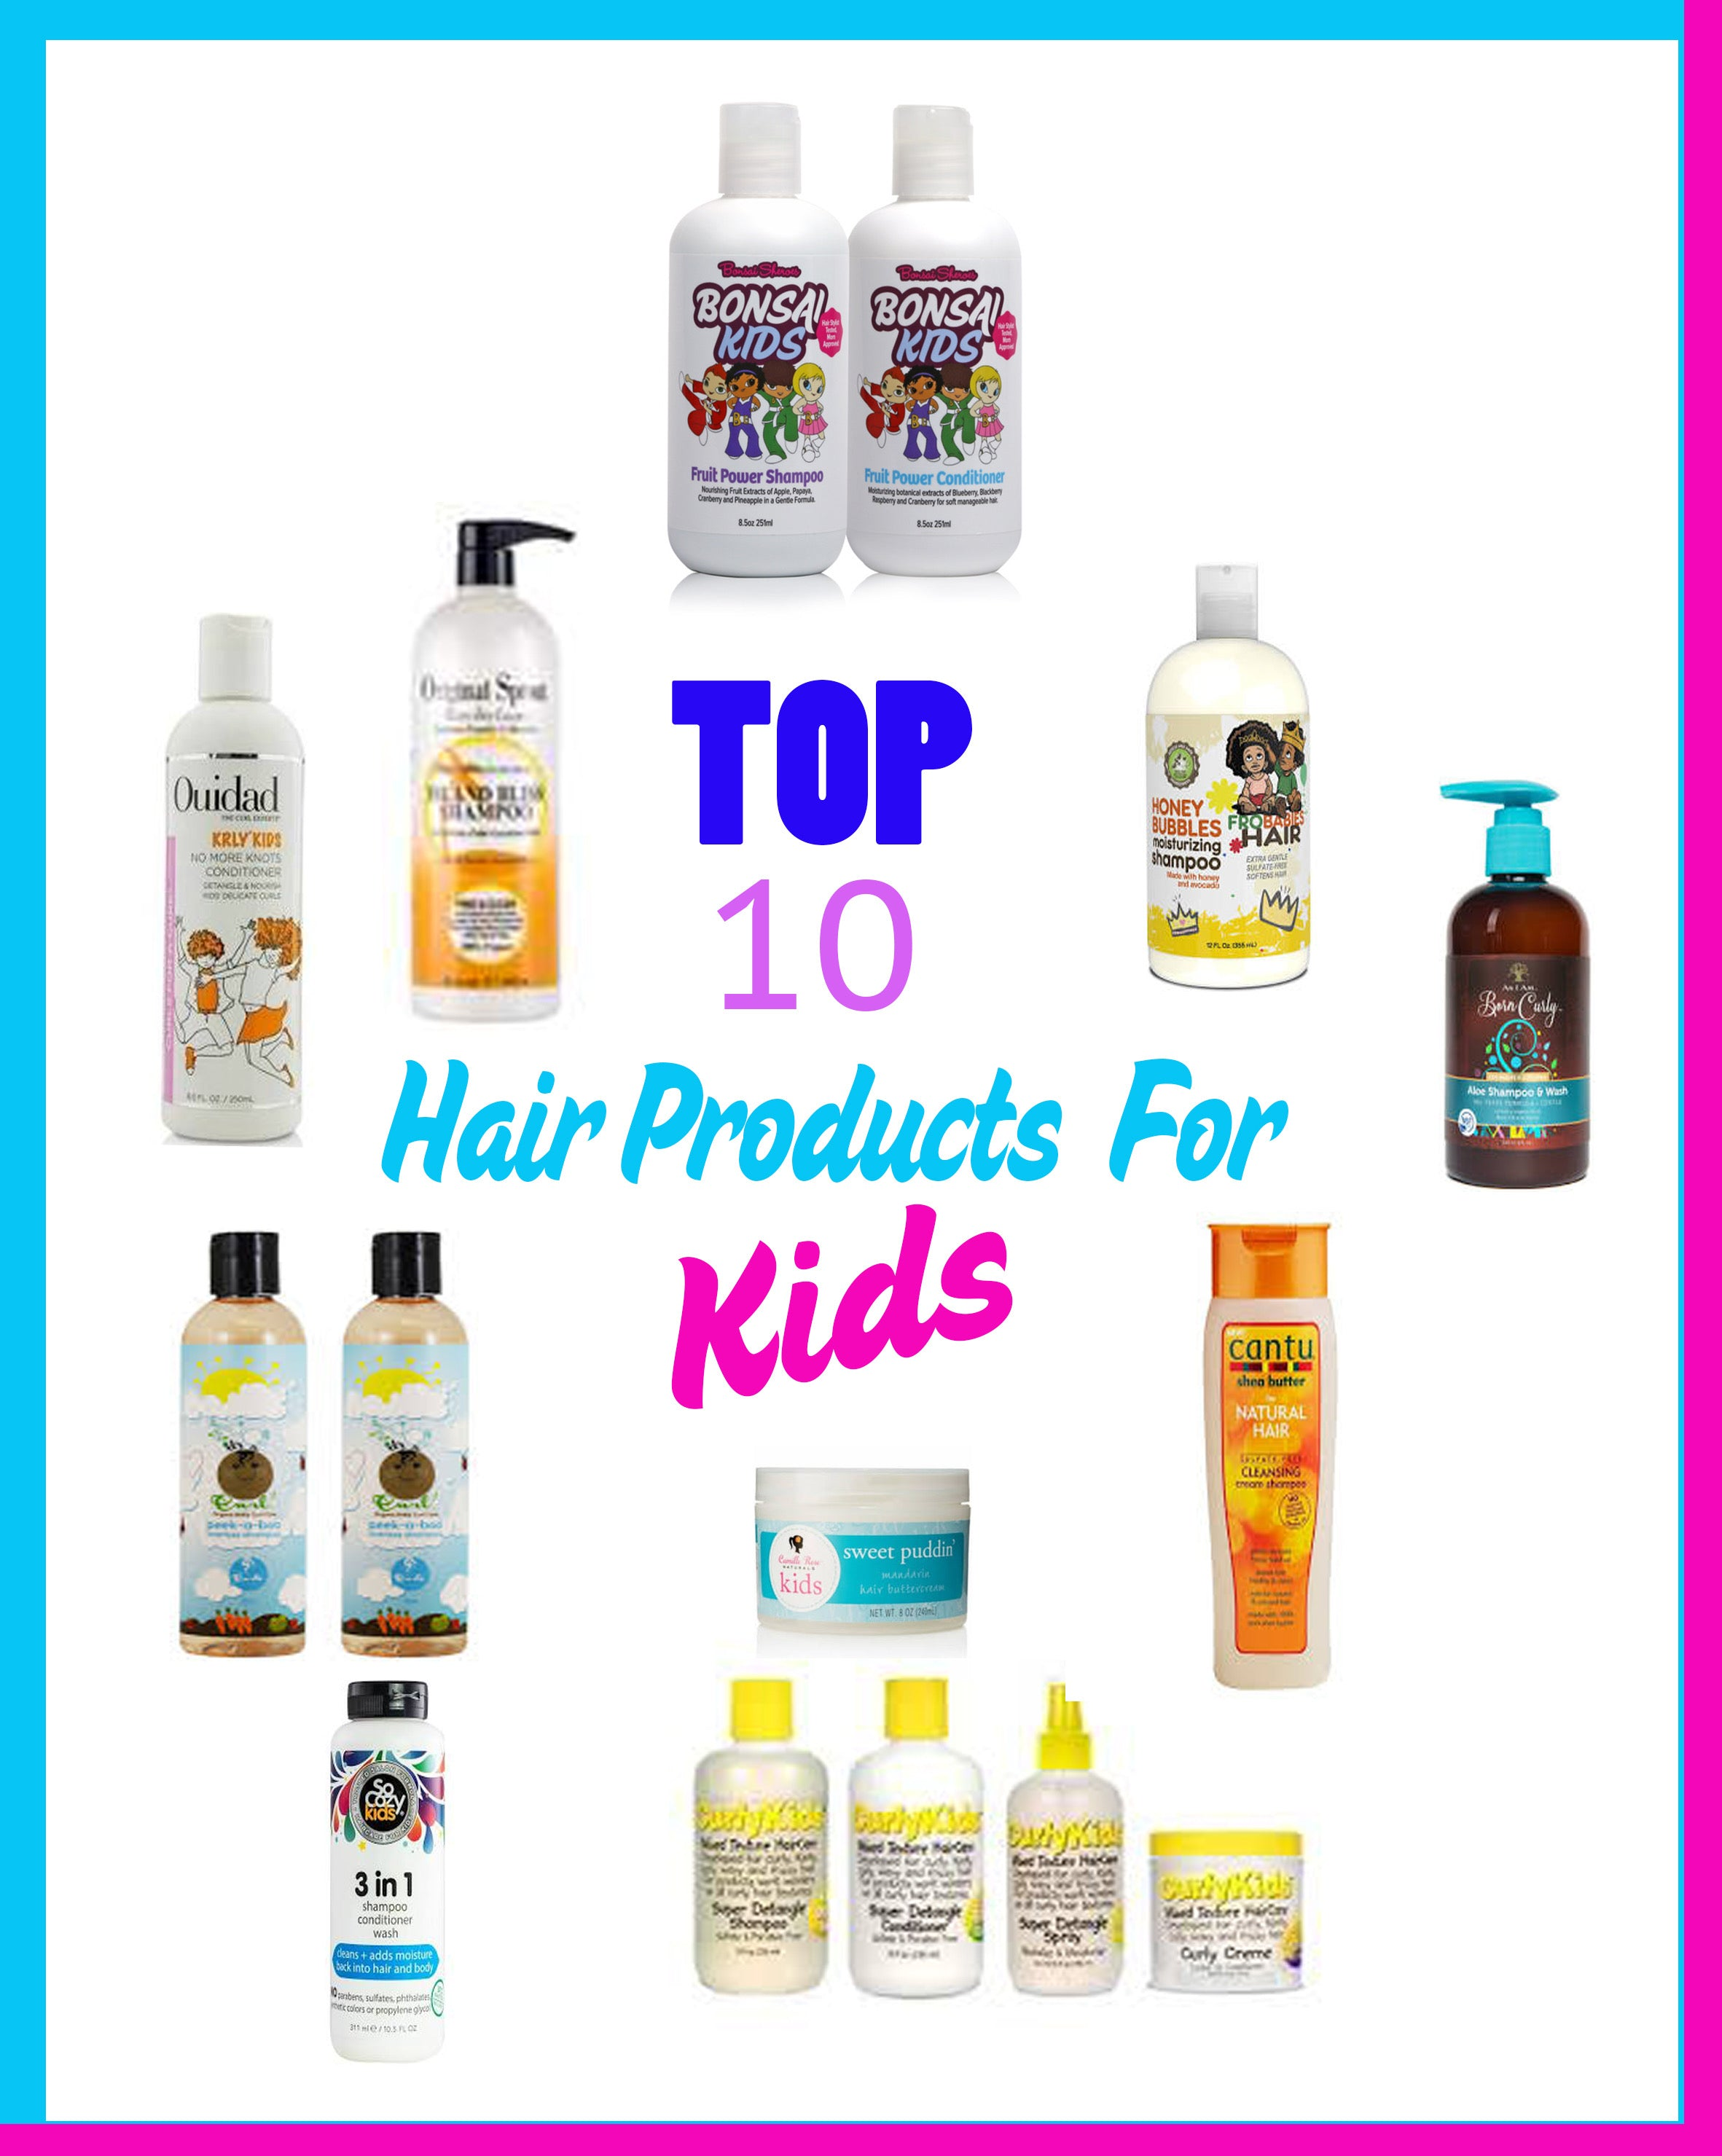 TOP 10 HAIR PRODUCTS FOR HAIR